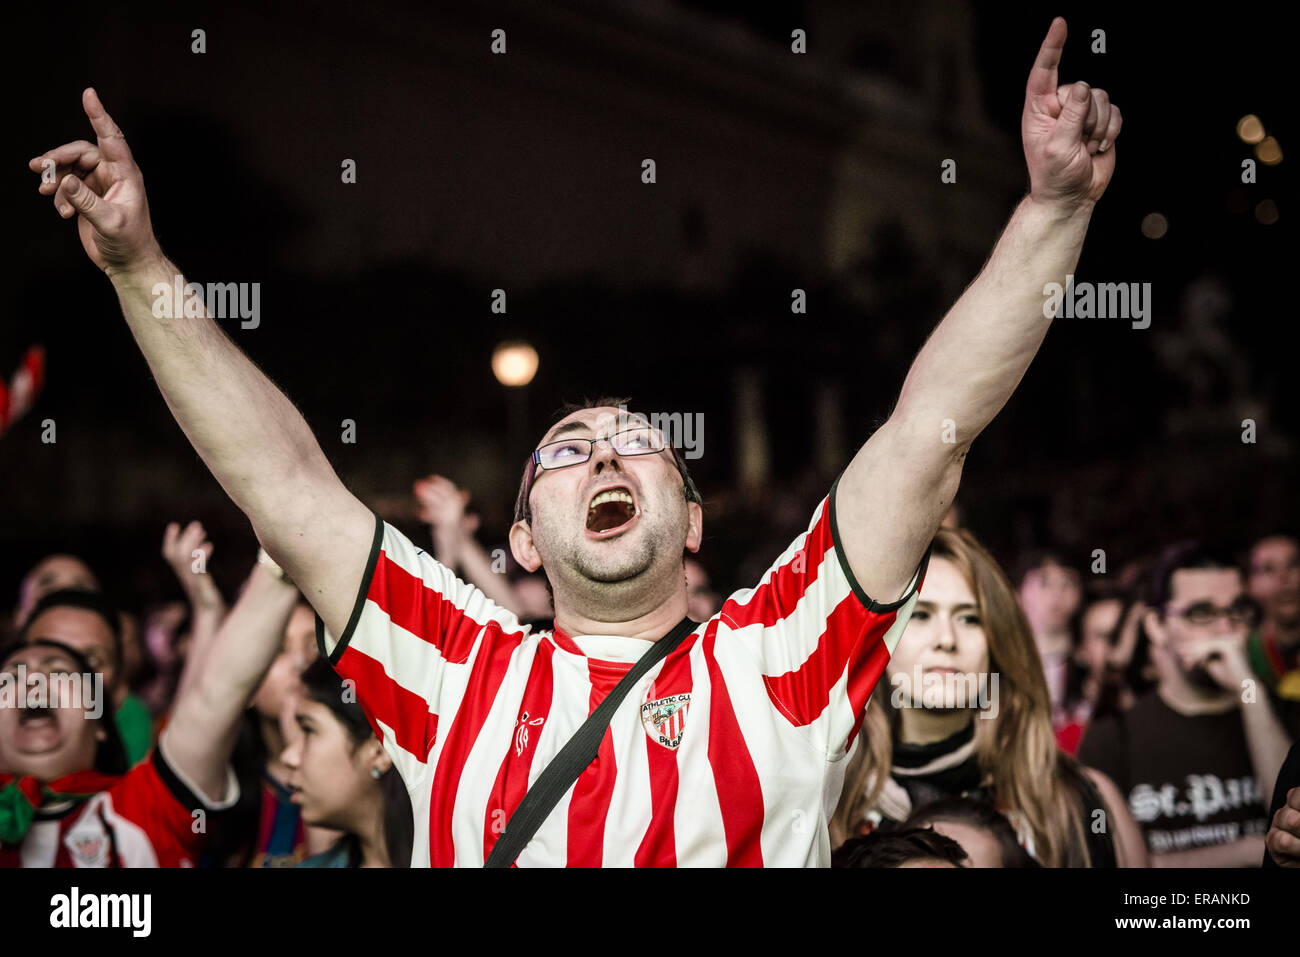 Barcelona, Catalonia, Spain. 30th May, 2015. An Athletic Bilbao supporter celebrates a goal of his team during the - Stock Image